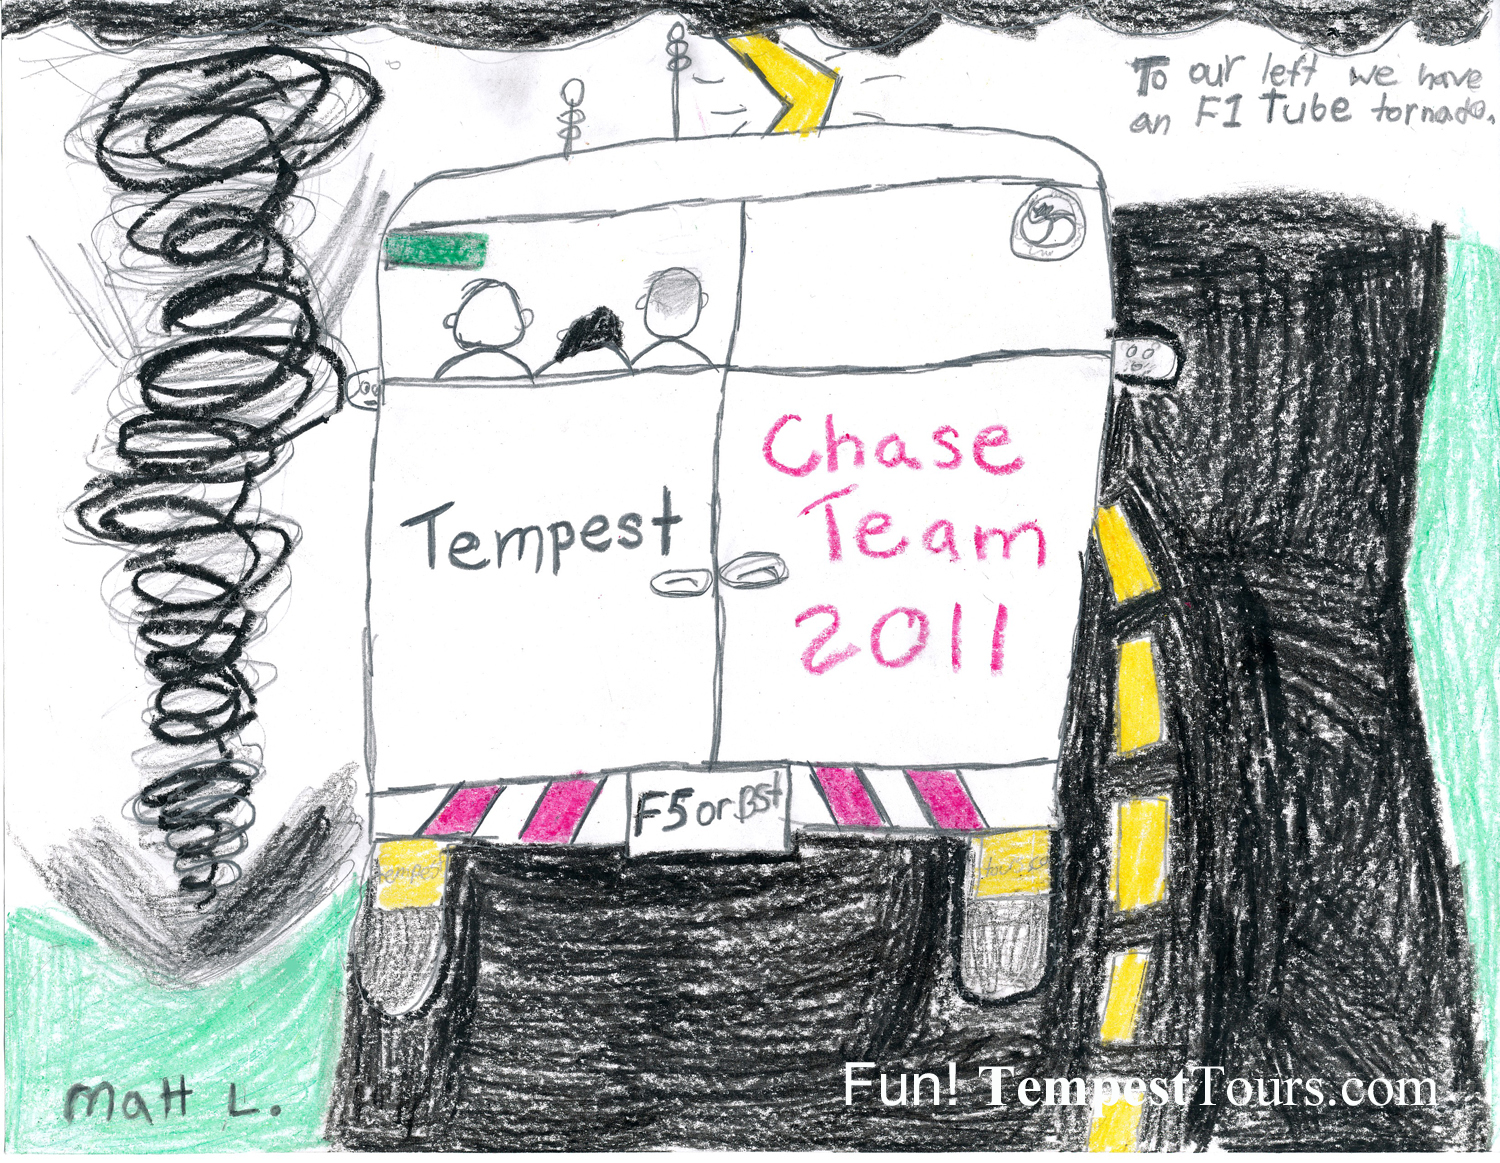 Tempest+Chase+Team+2011+Sketch+by+Matthew+Tempest+Tours+Storm+Chasing+Expeditions+www.tempesttours.com.jpg